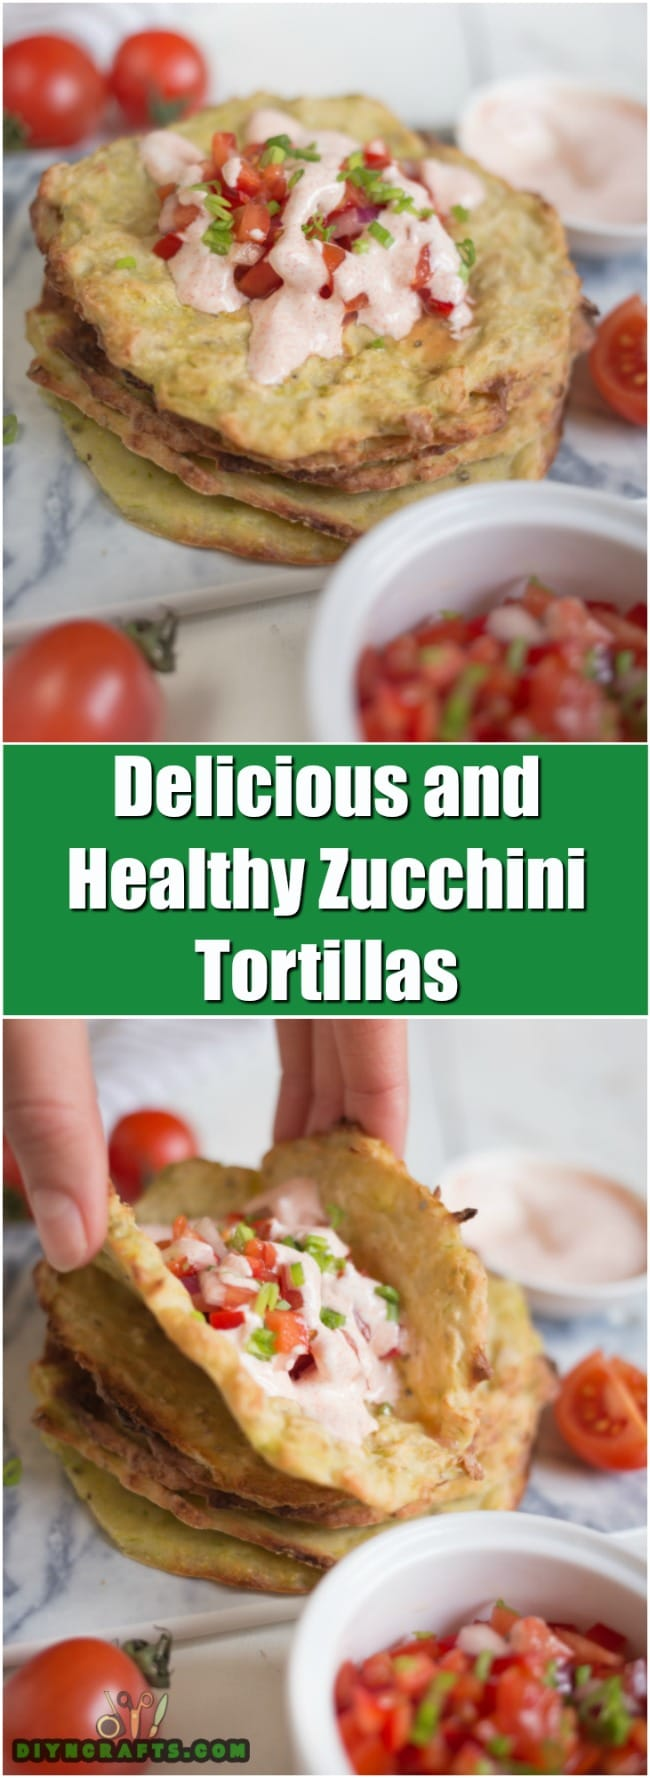 These Easy To Make Zucchini Tortillas Are Healthy And Delicious - Recipe and Photos by DIYnCrafts Team